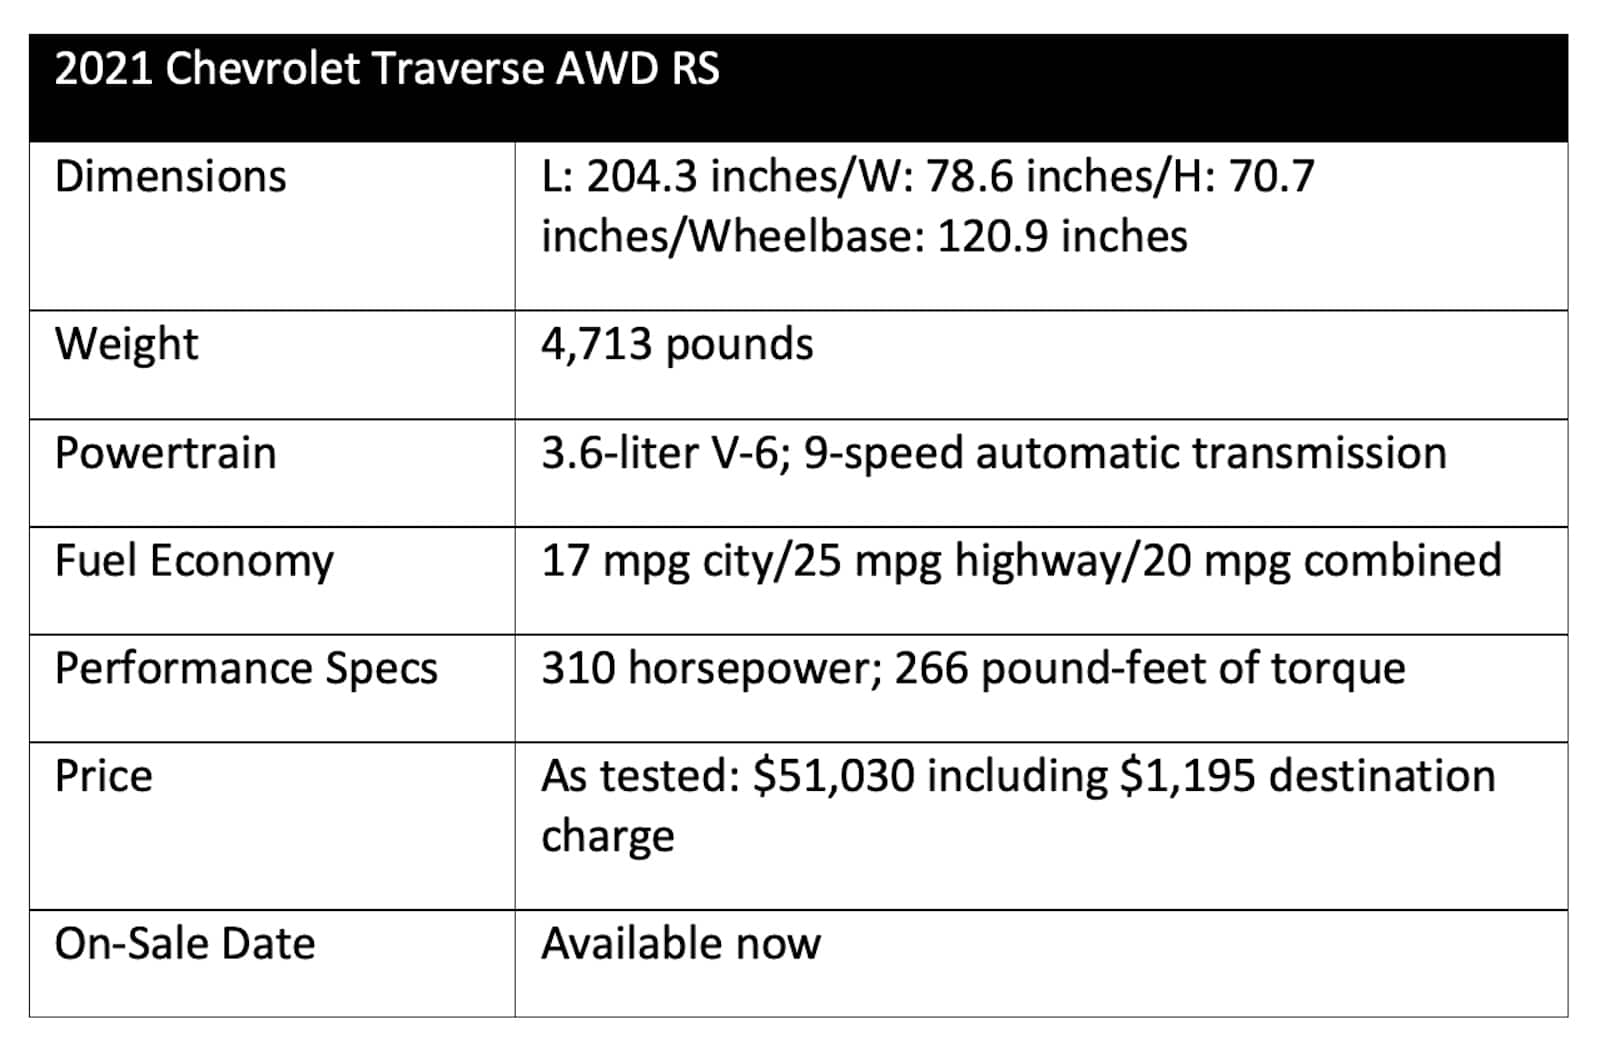 2021 Chevrolet Traverse AWD RS chart